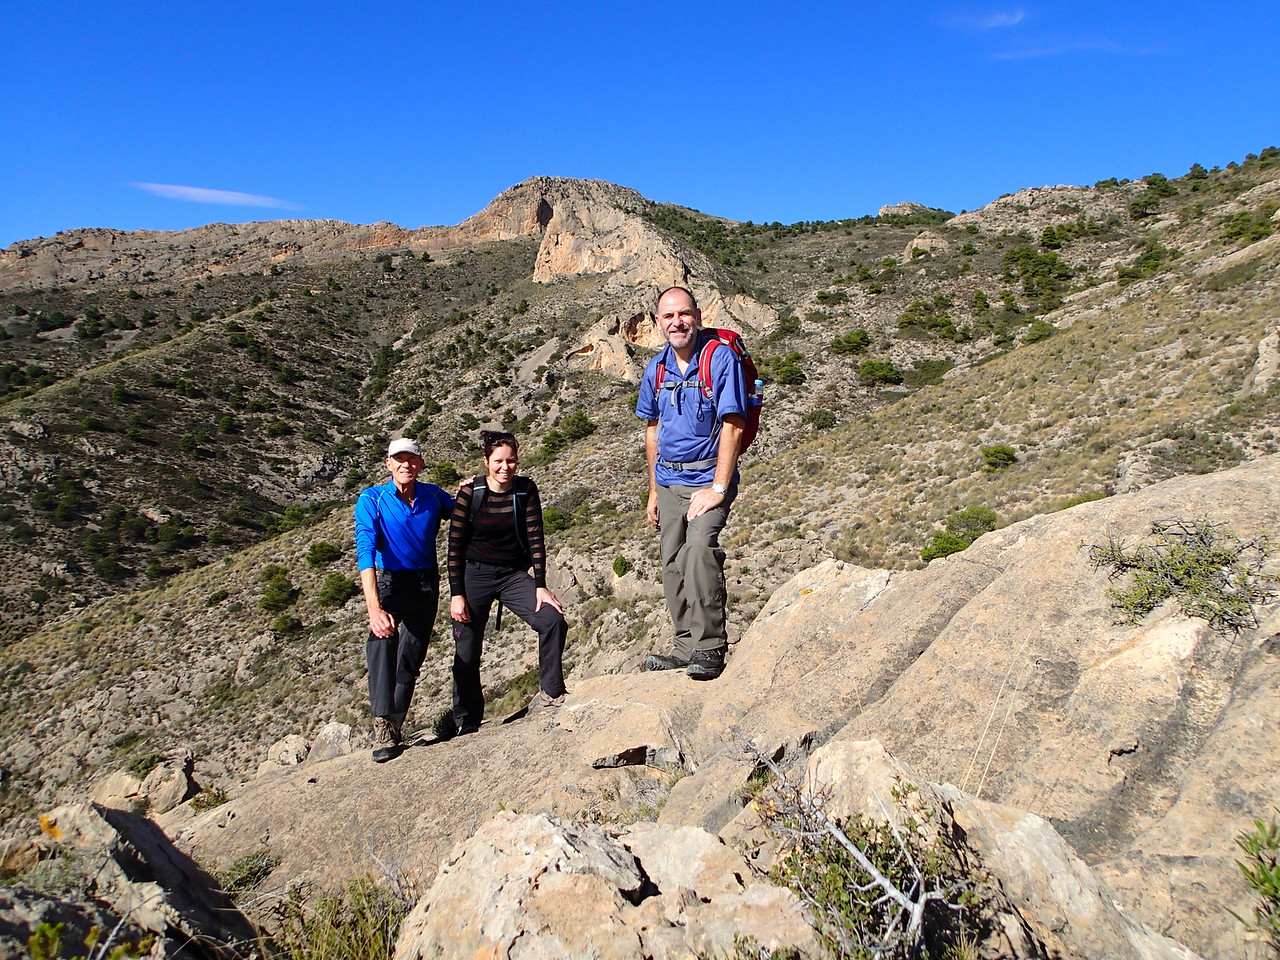 Creating a new route on the Cabezon de Oro